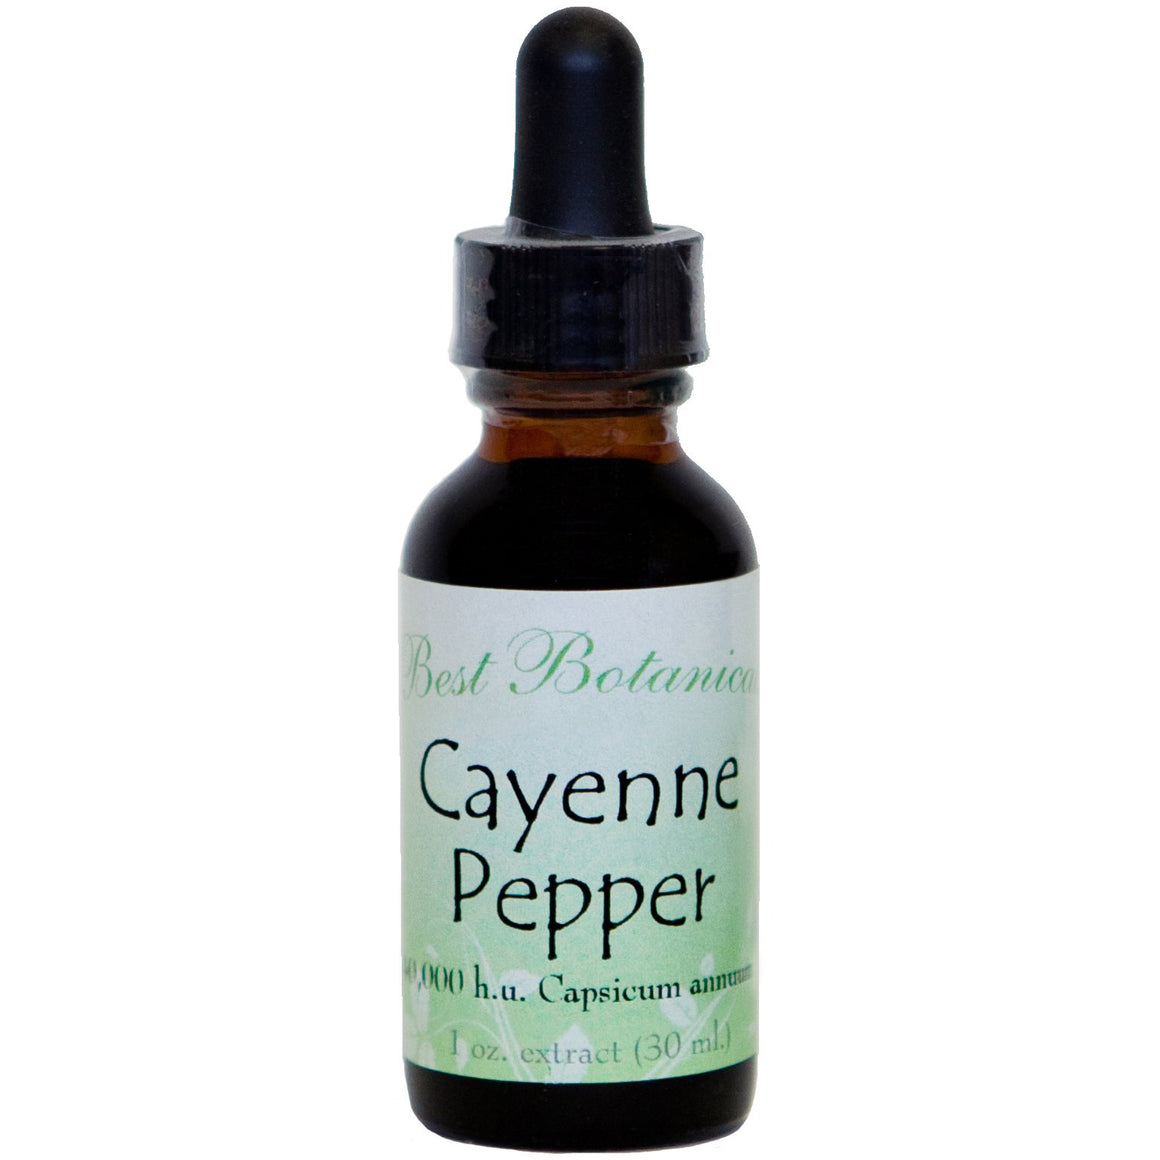 Cayenne Pepper Extract 40 MHU